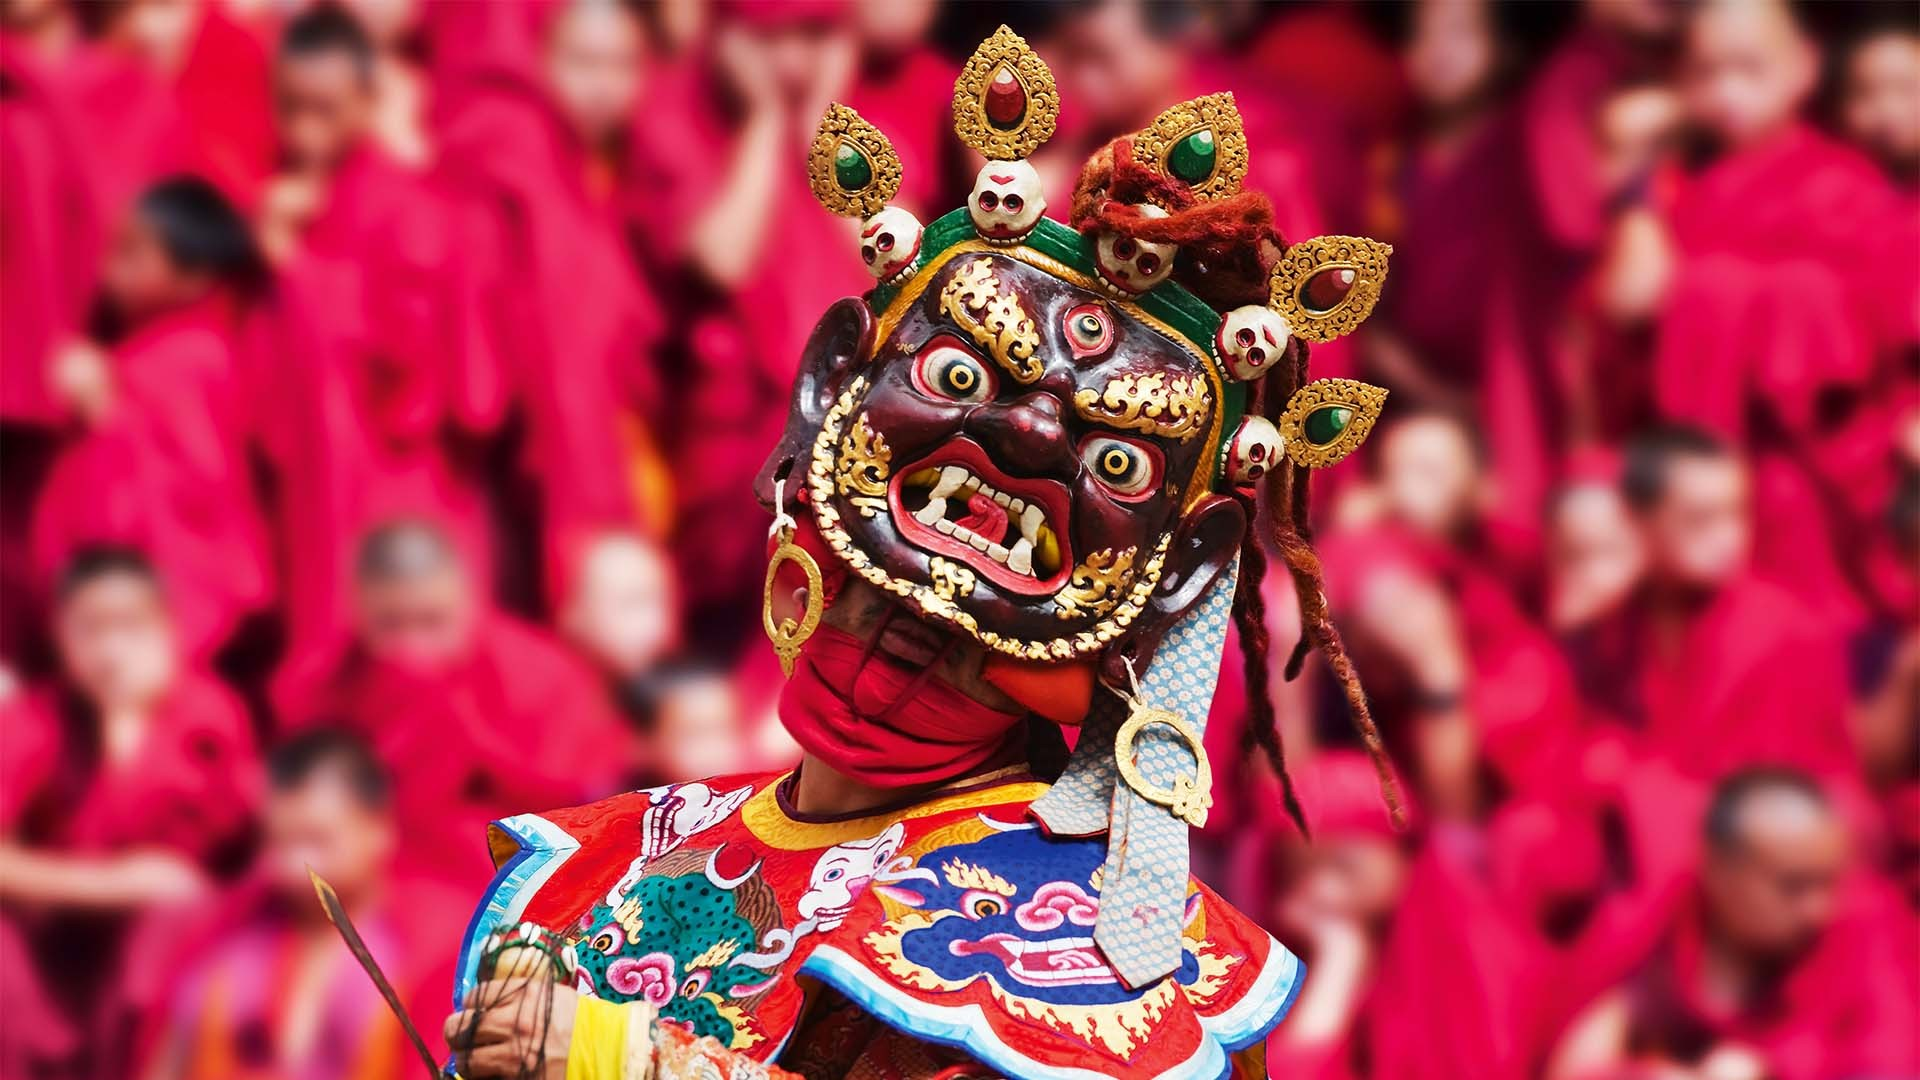 Masked dancer at a festival in Bhutan